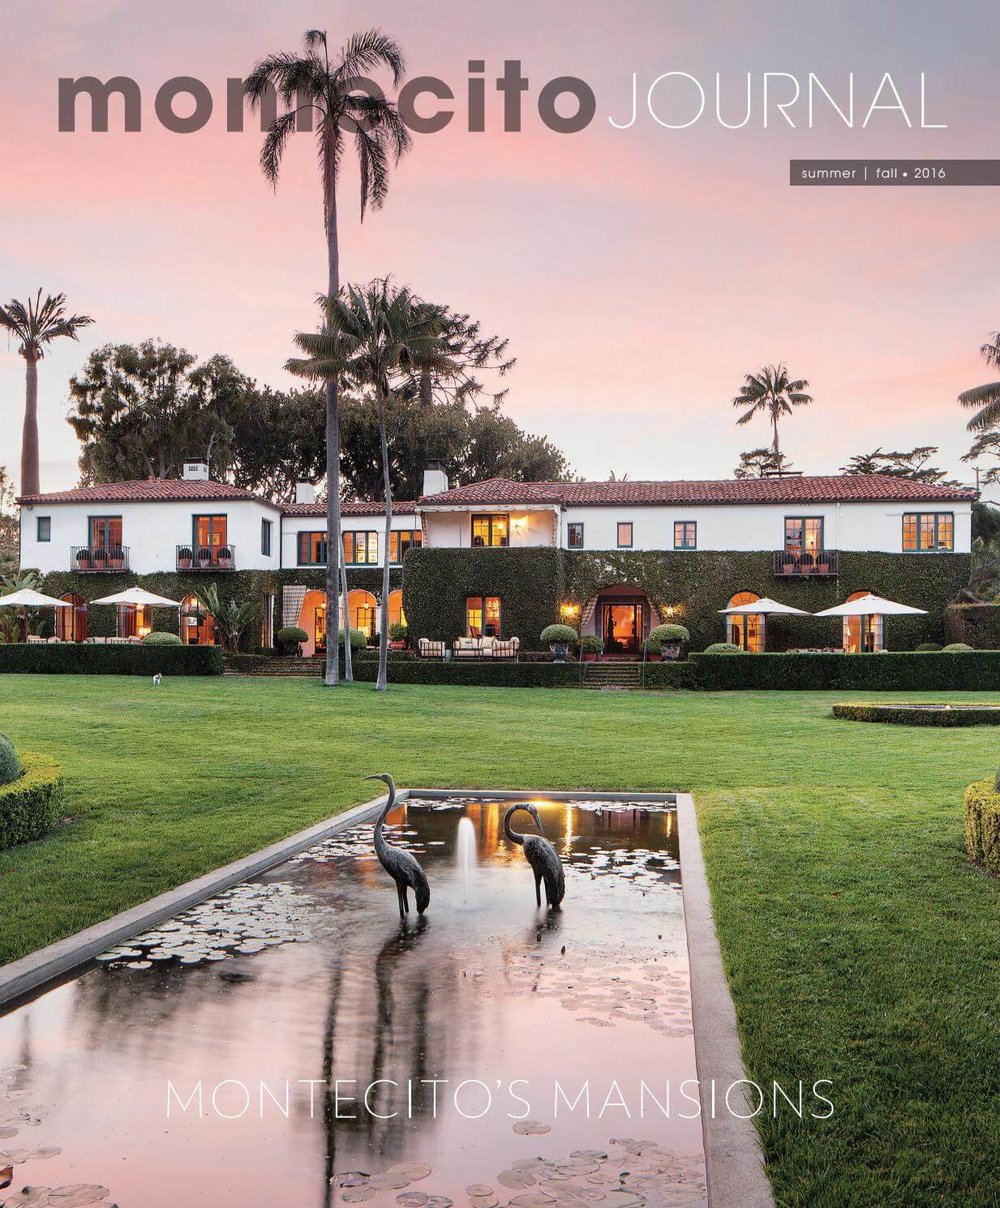 montecito-journal-2.jpg